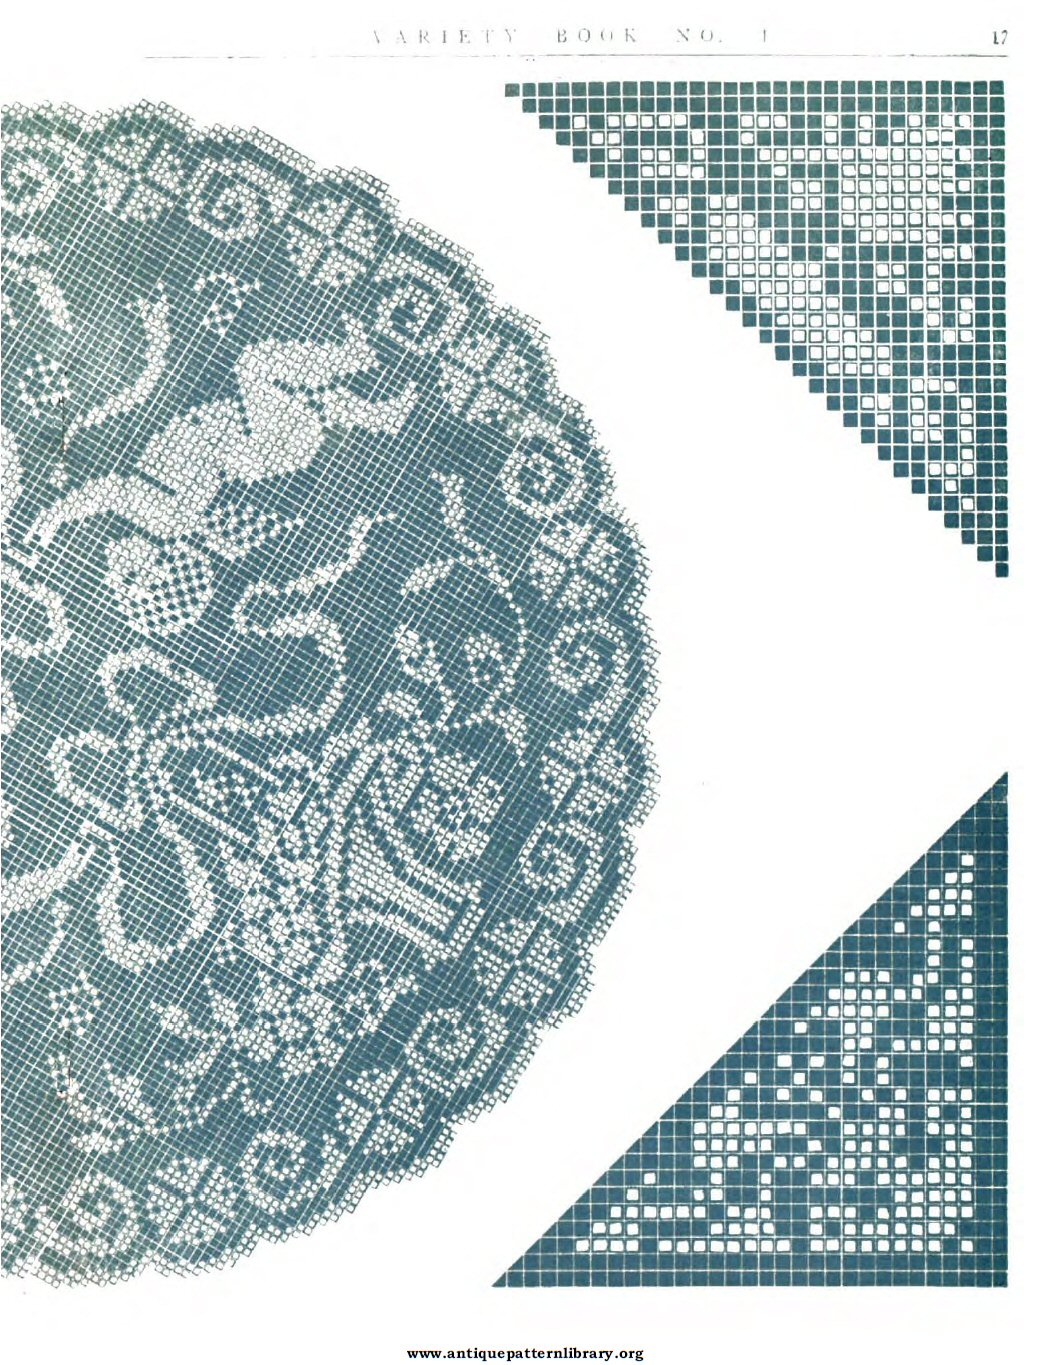 6-DA009 Variety Italian Cut Work and Filet Lace Book No. 1.